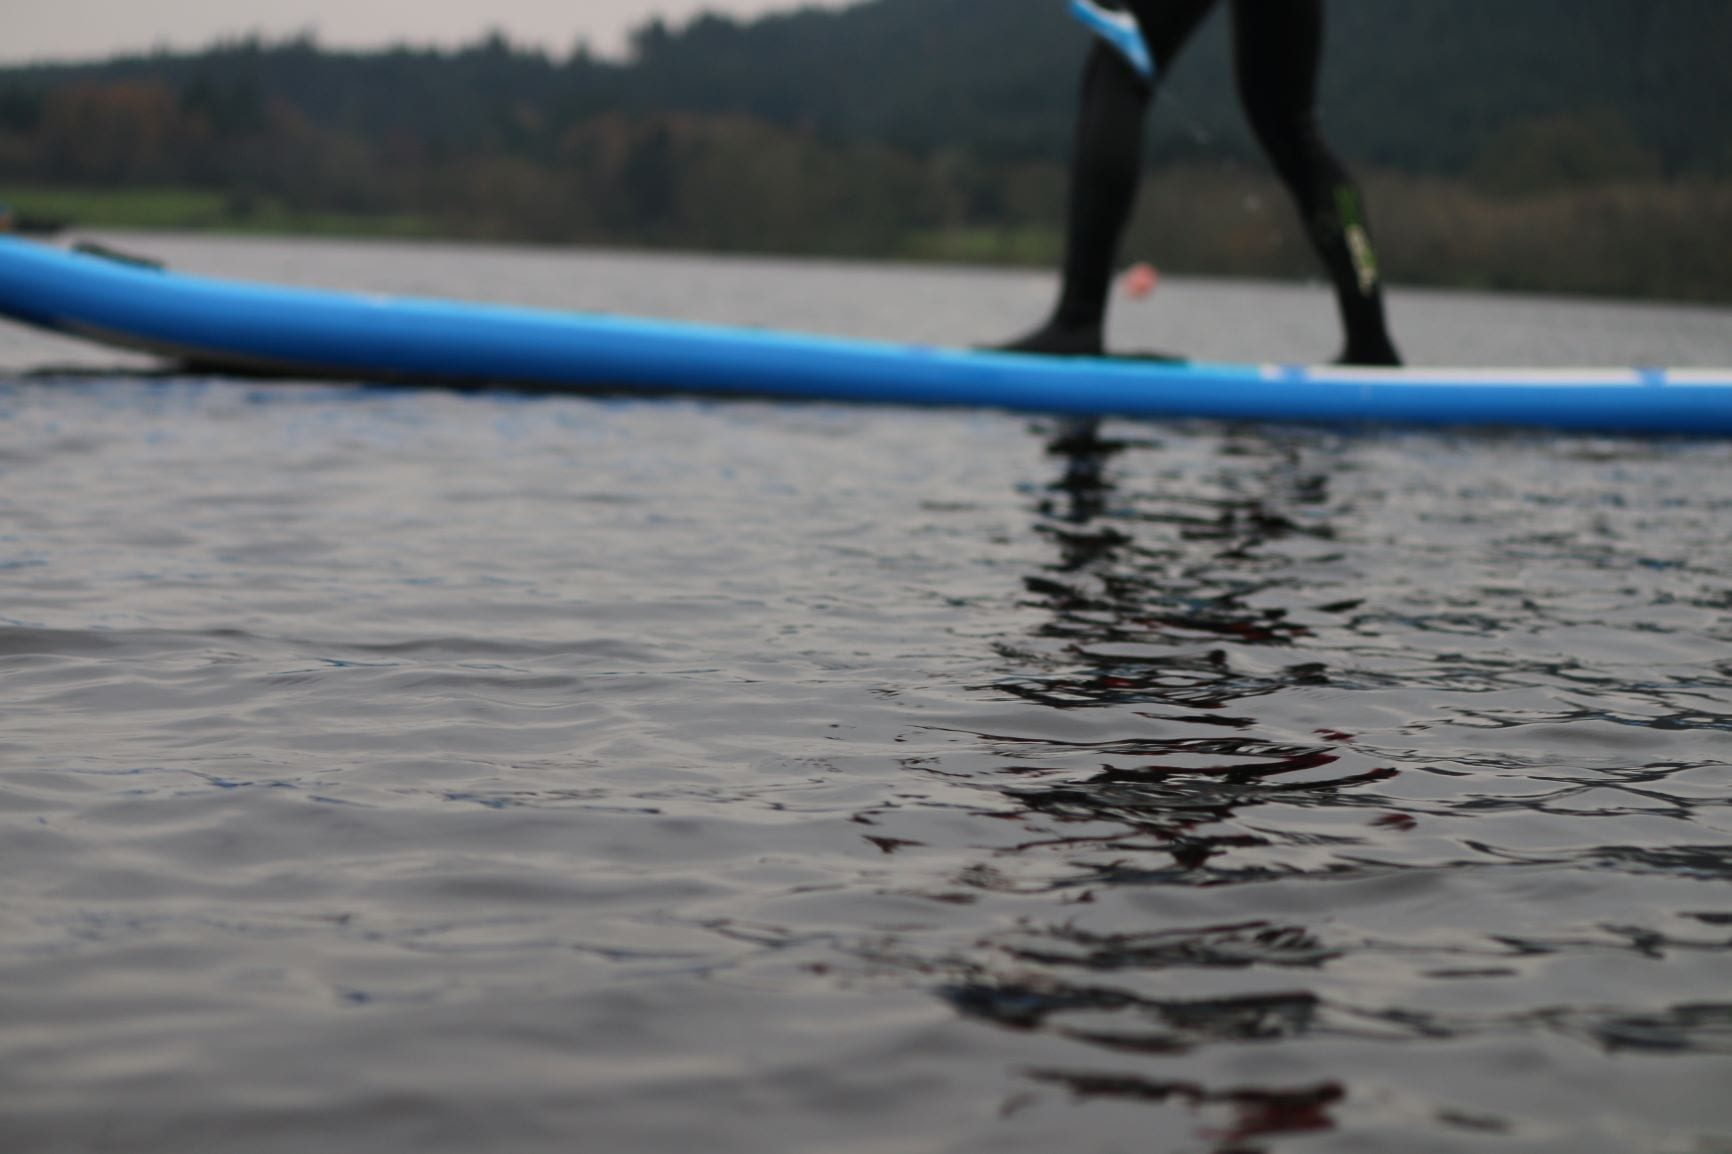 light reflecting on the water by paddleboard